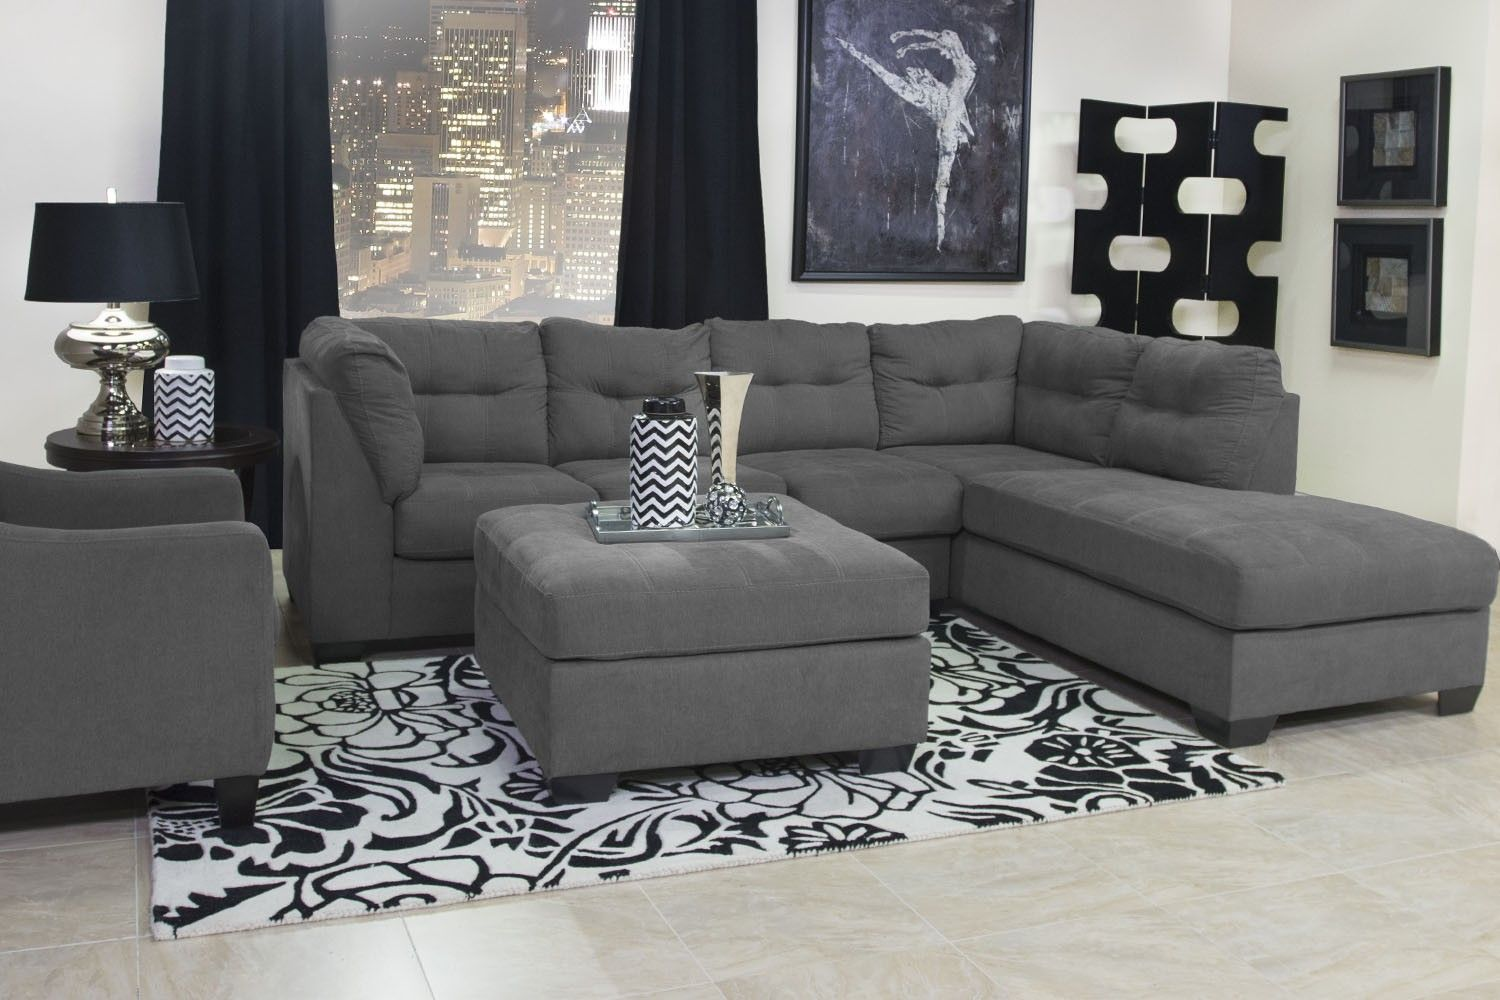 Mor furniture for less the maier left facing chaise sectional mor furniture for less